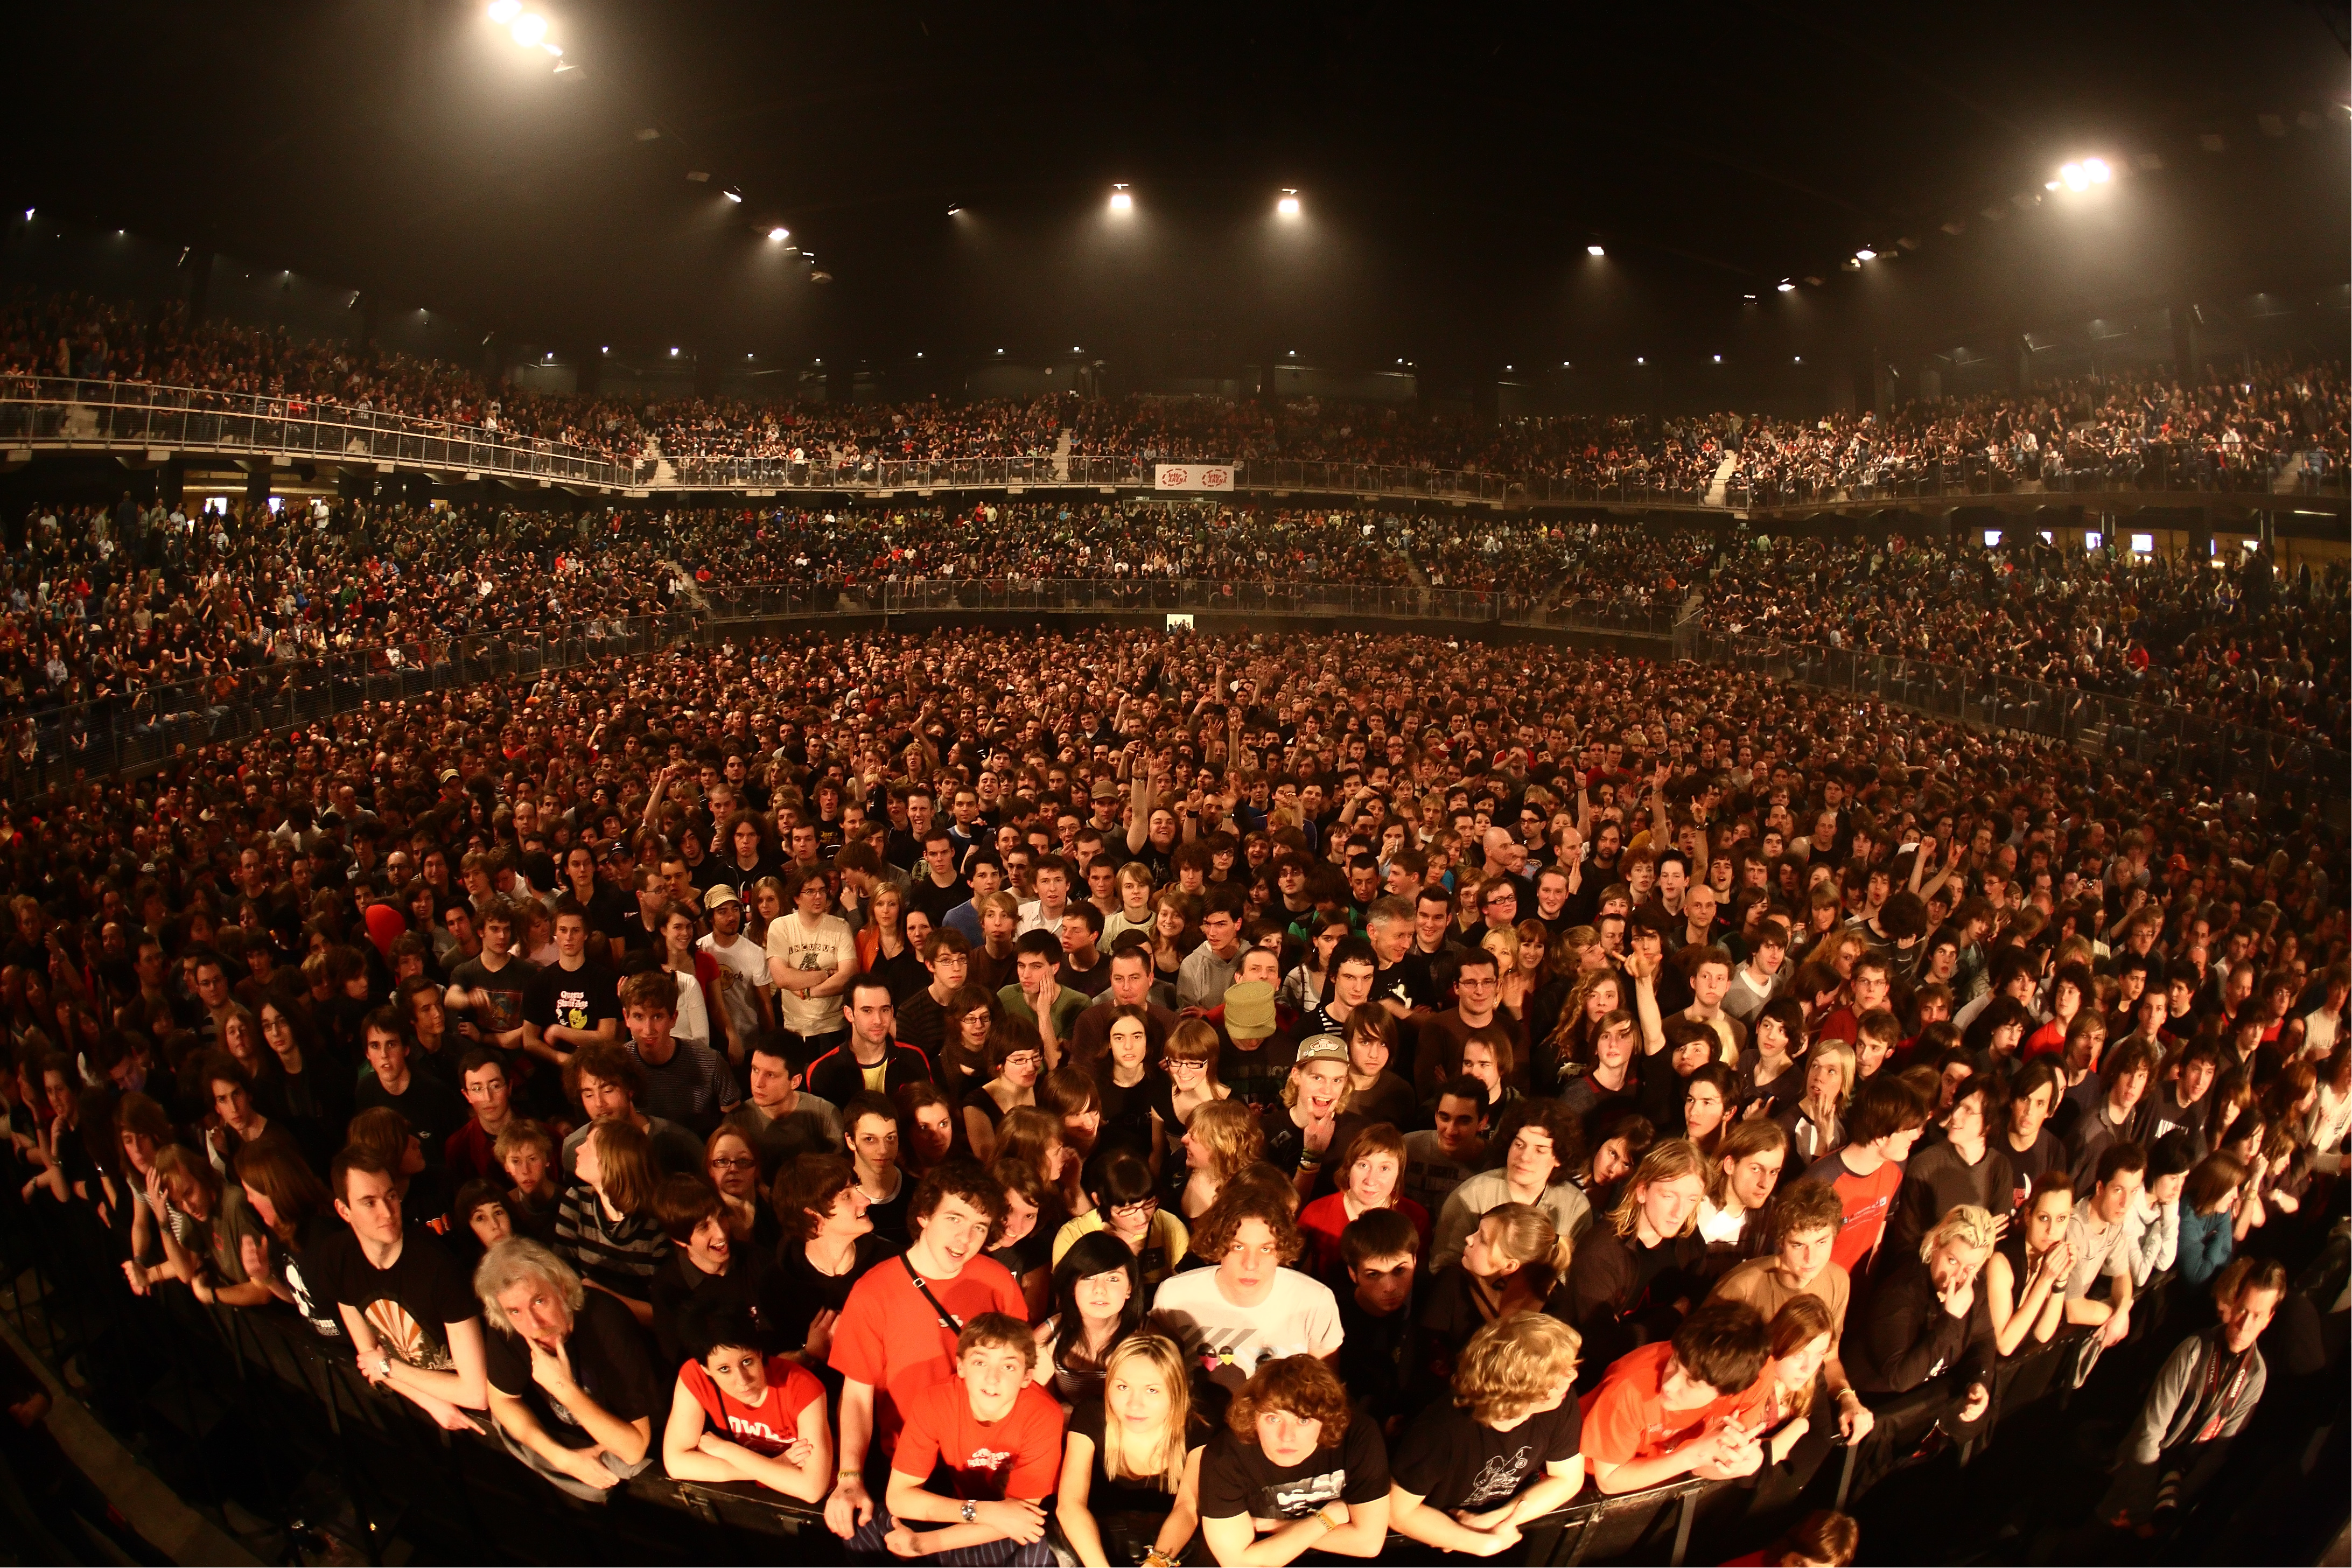 Concert Crowd in Amsterdam